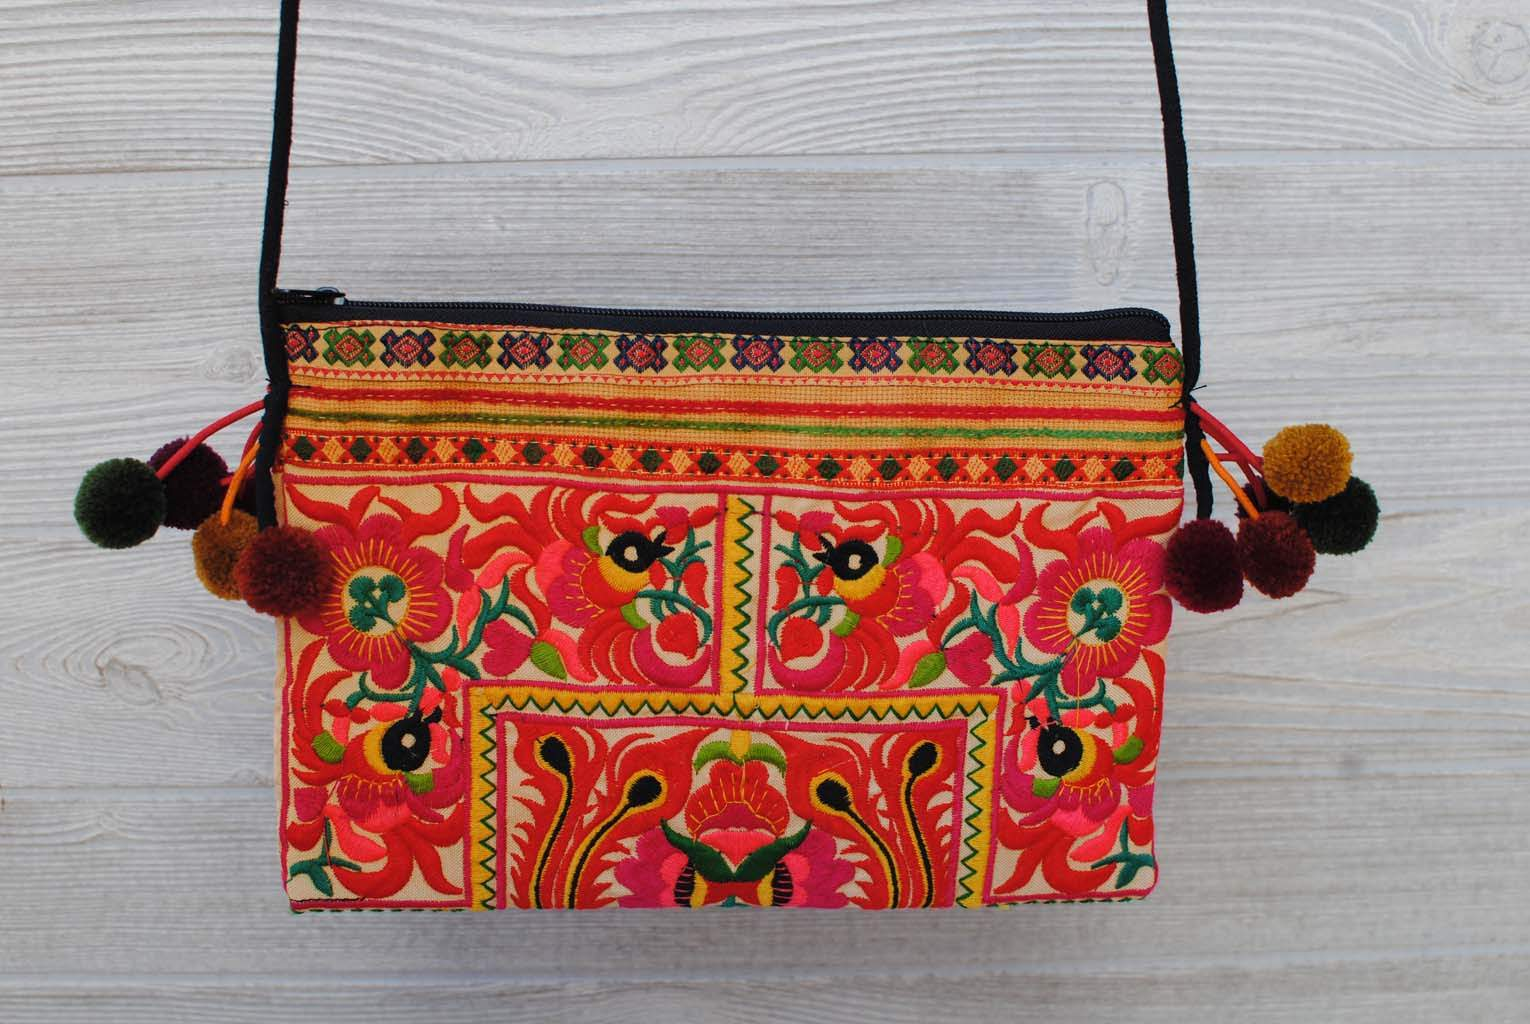 Boho Ethnic Embroidery Bag - Floral Orange Green Yellow